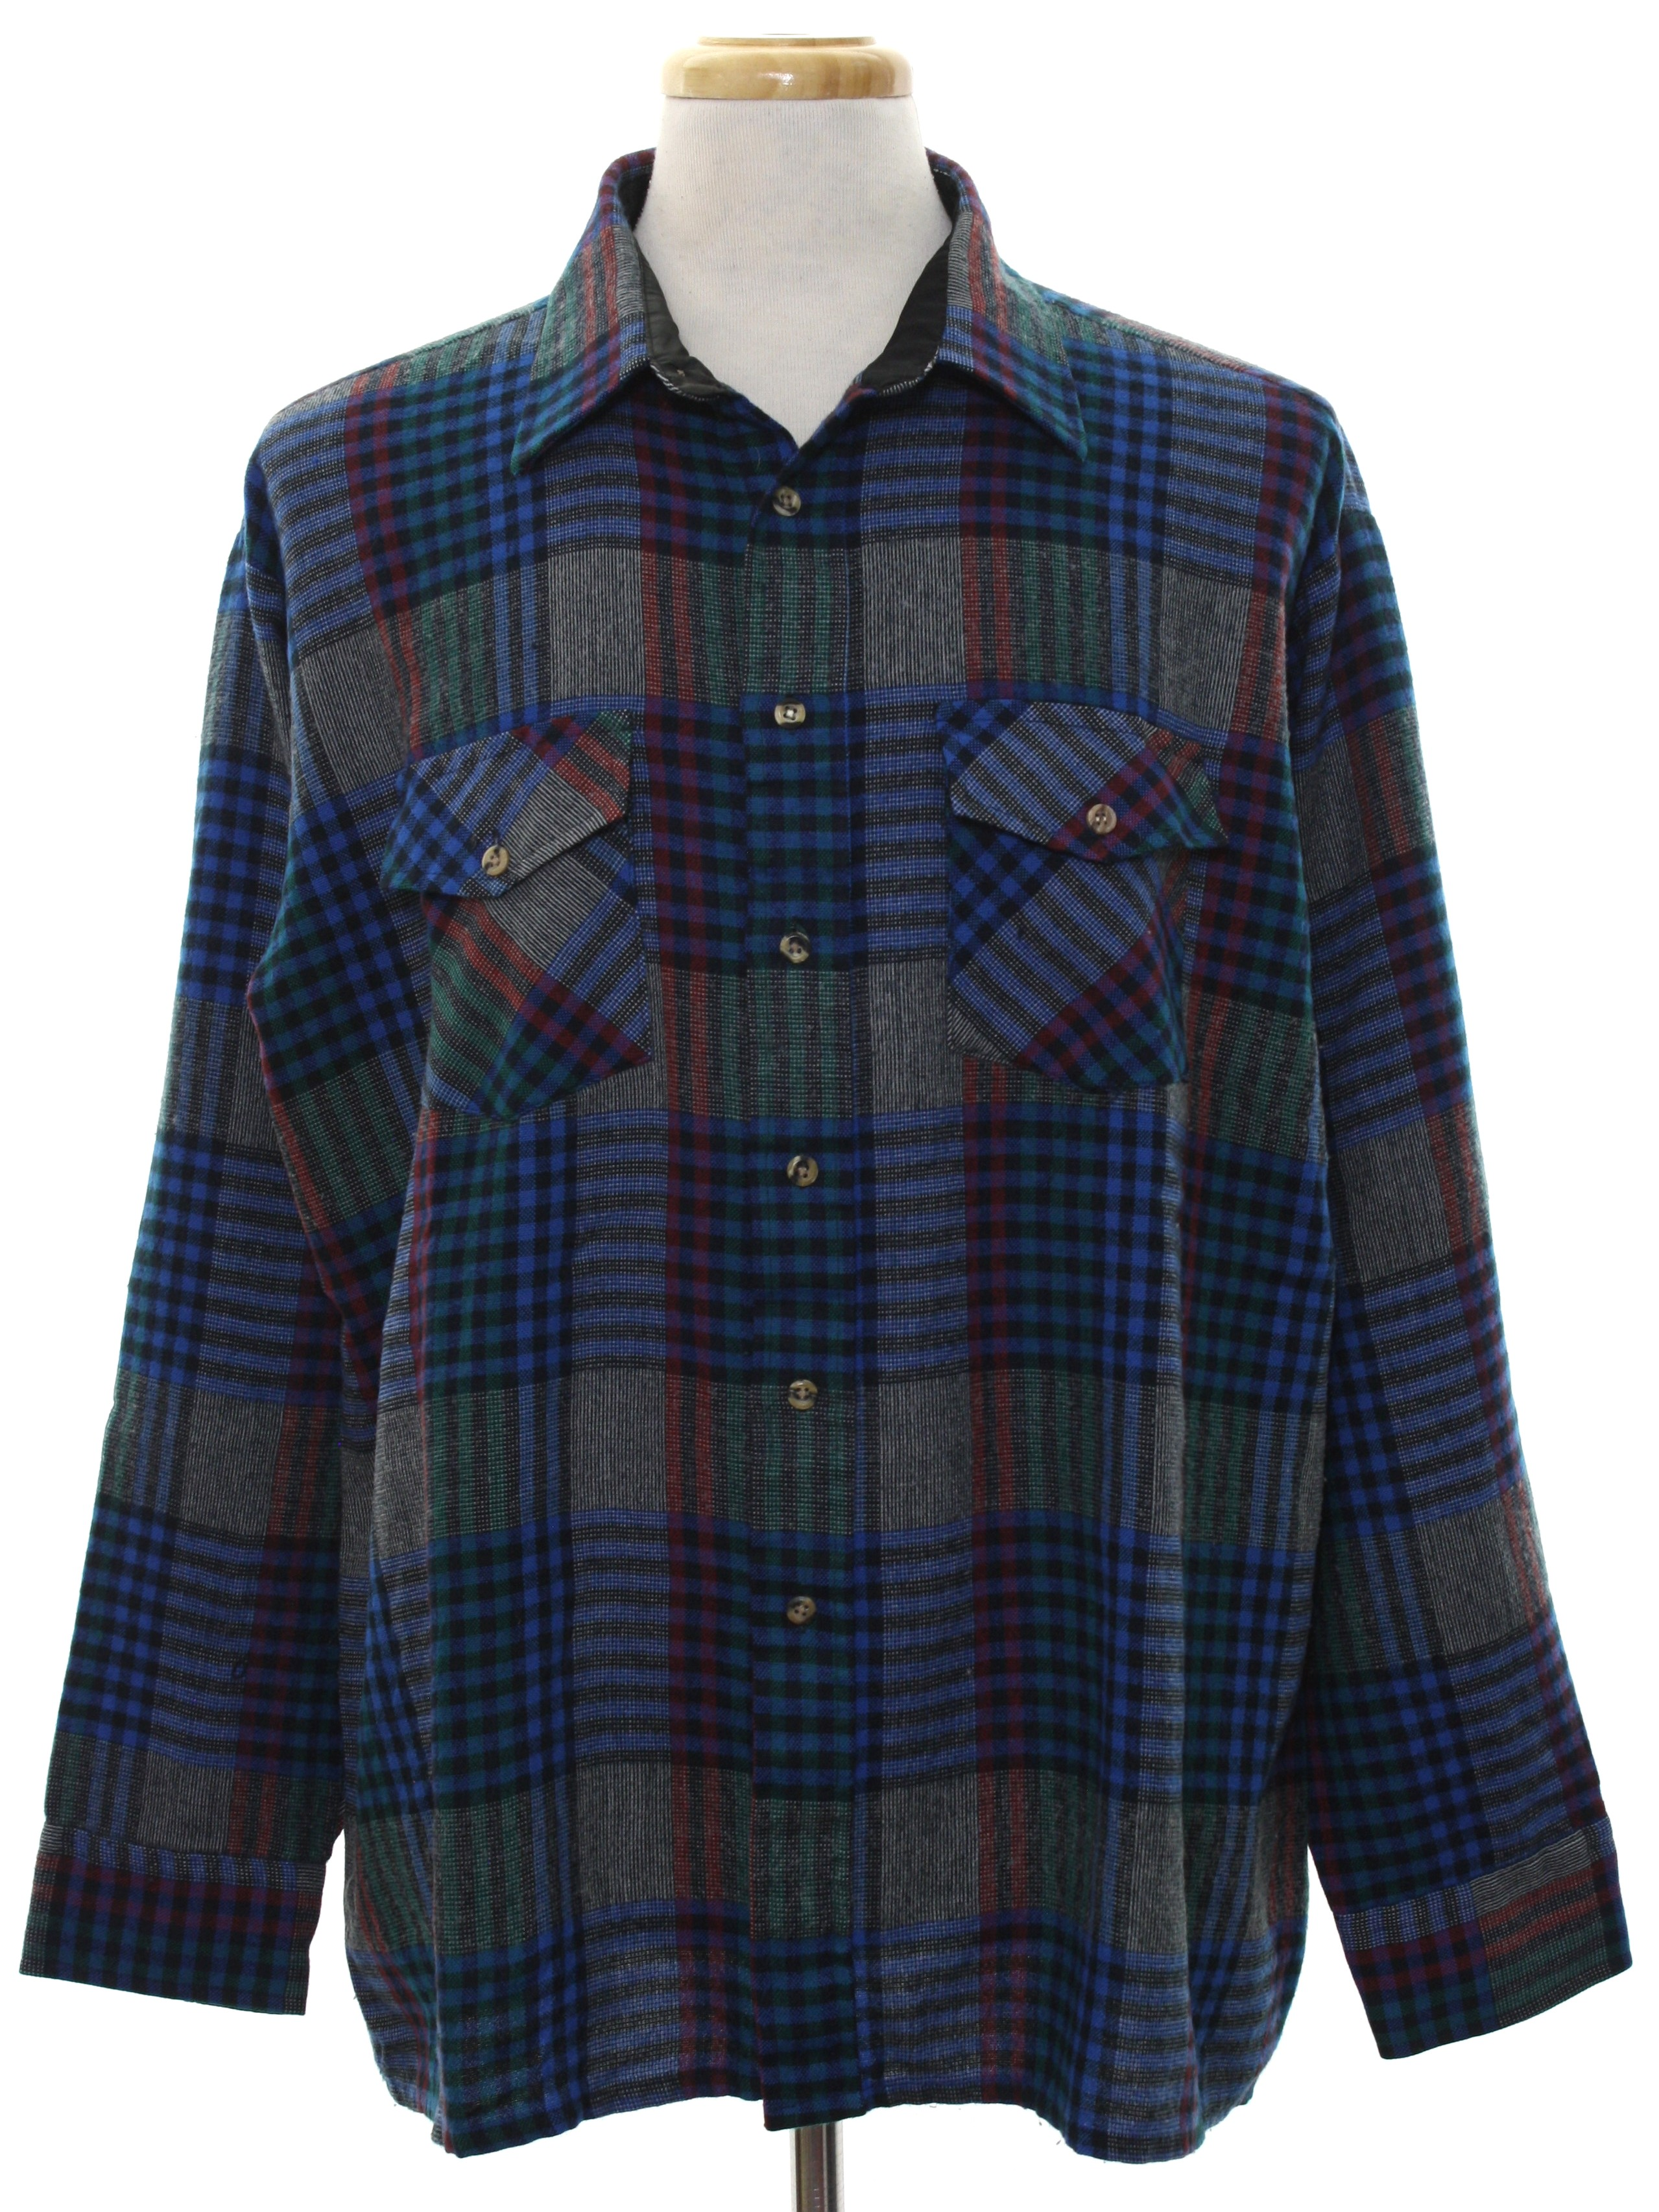 Vintage 1980 39 s shirt 80s van heusen mens navy blue for Navy blue and red flannel shirt